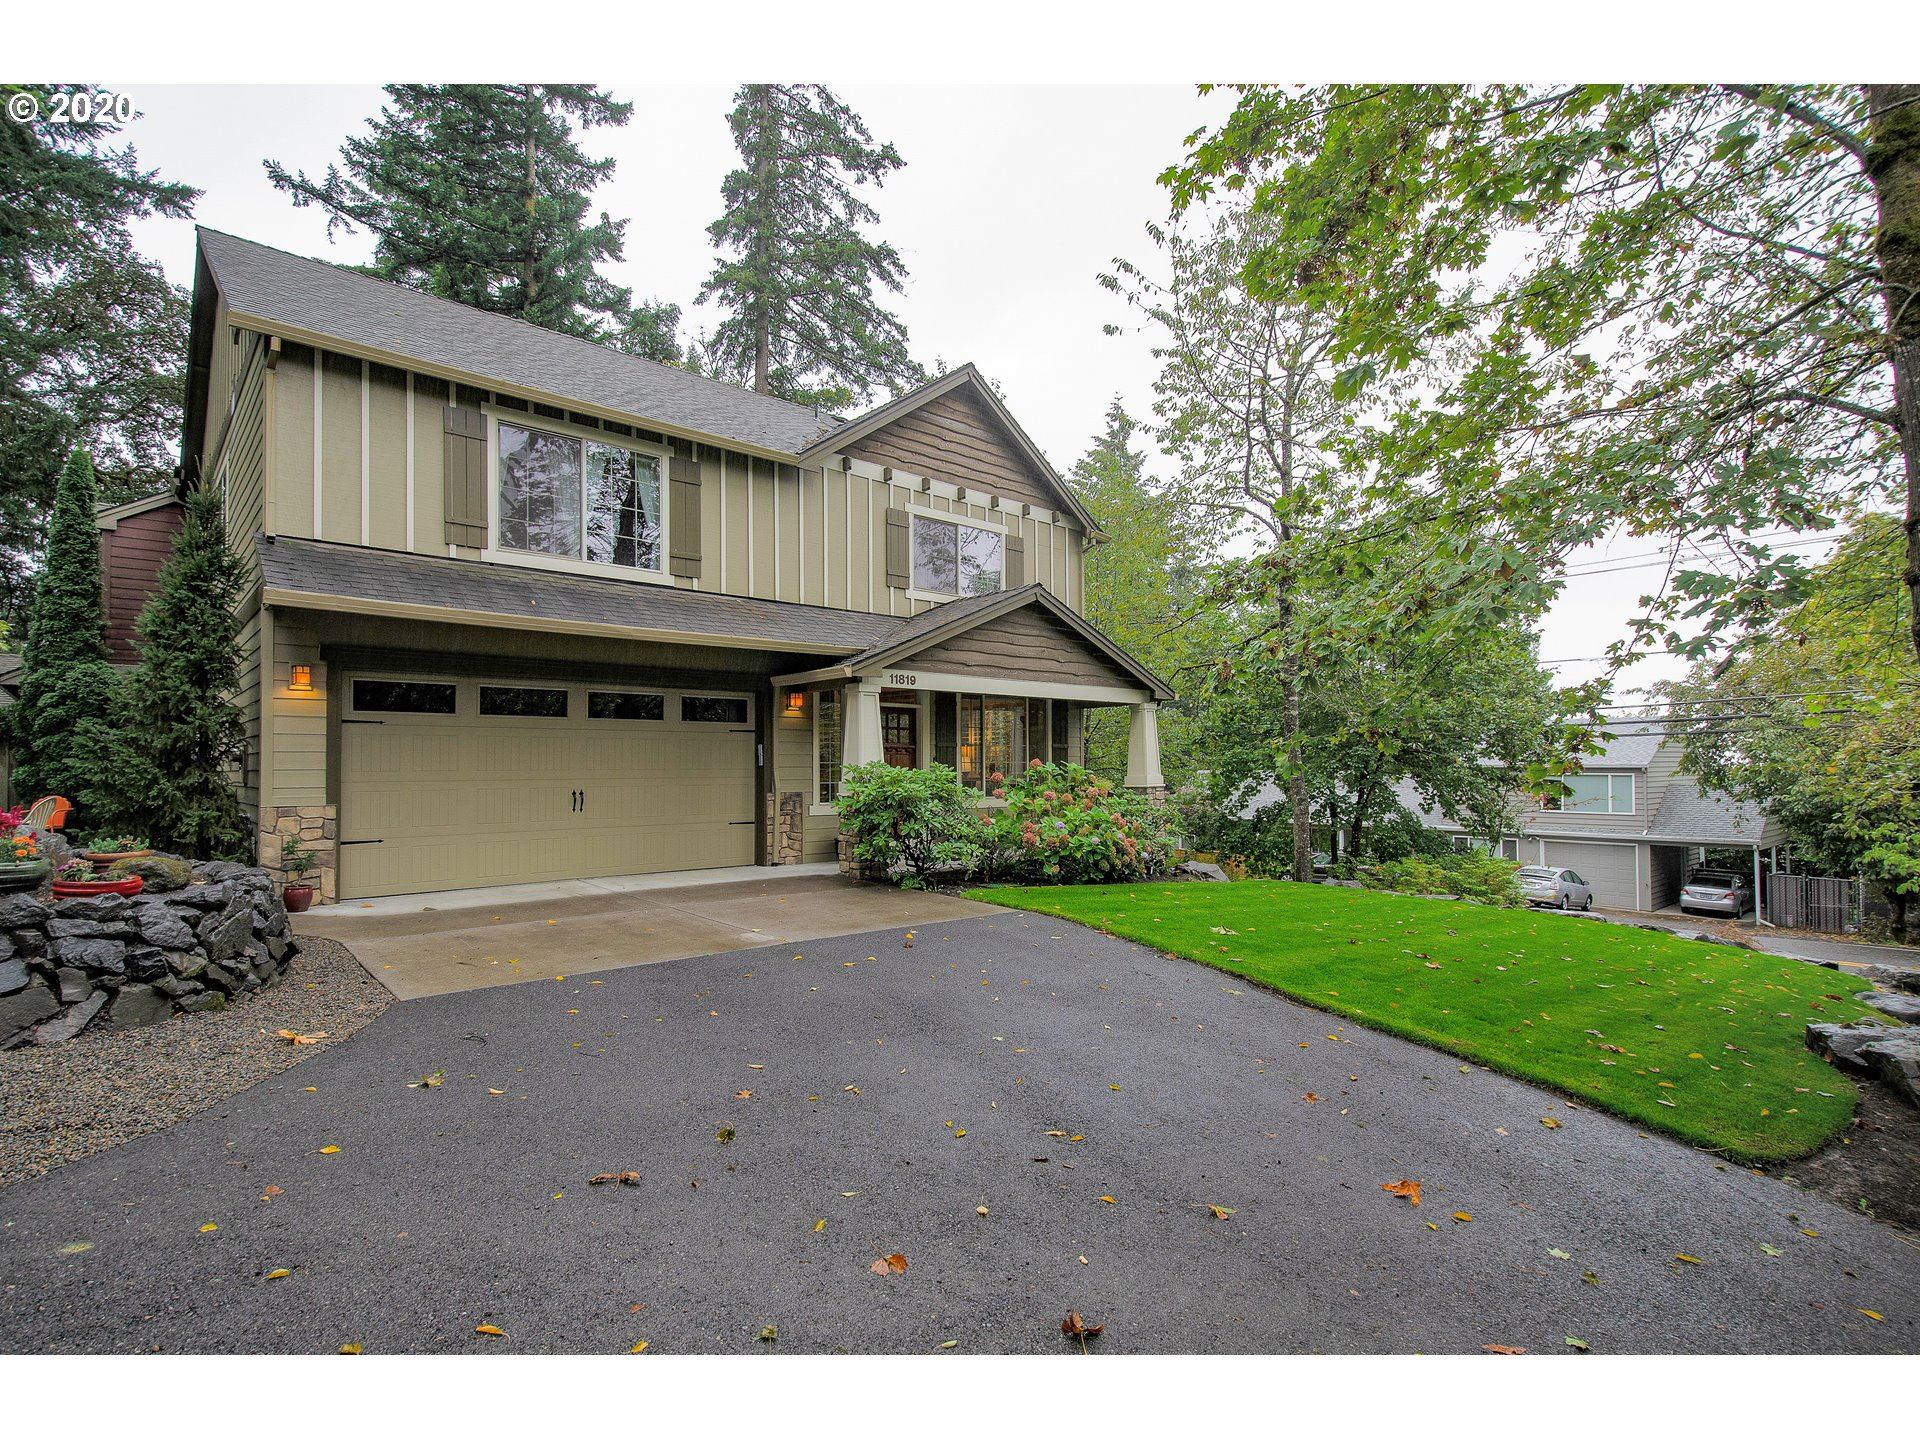 11819 SW 60TH AVE, Portland, OR 97219 - MLS#: 20495013